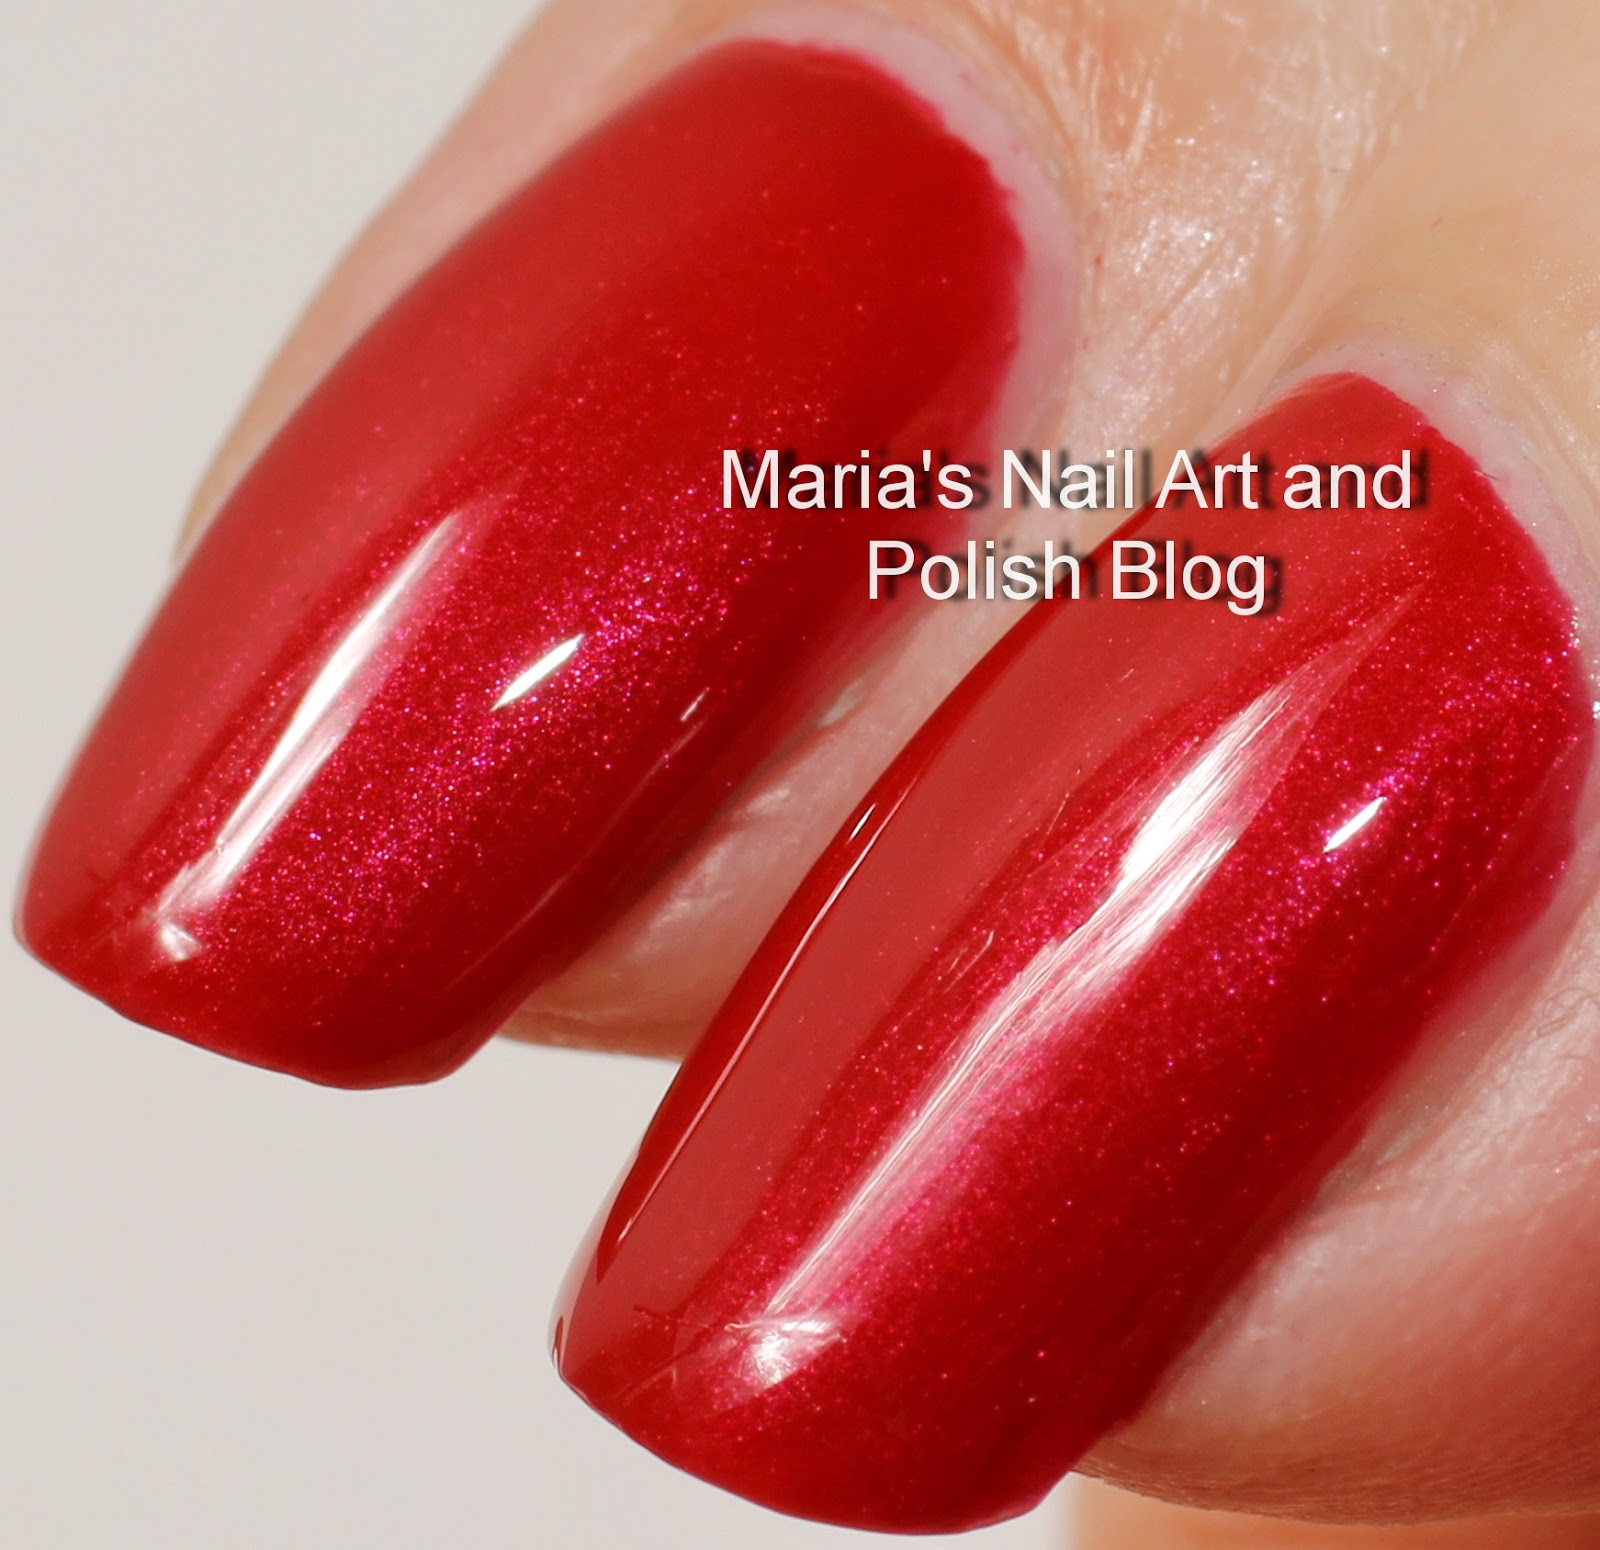 Marias Nail Art And Polish Blog Flushed With Stripes And: Marias Nail Art And Polish Blog: Chanel Shanghai Red 183